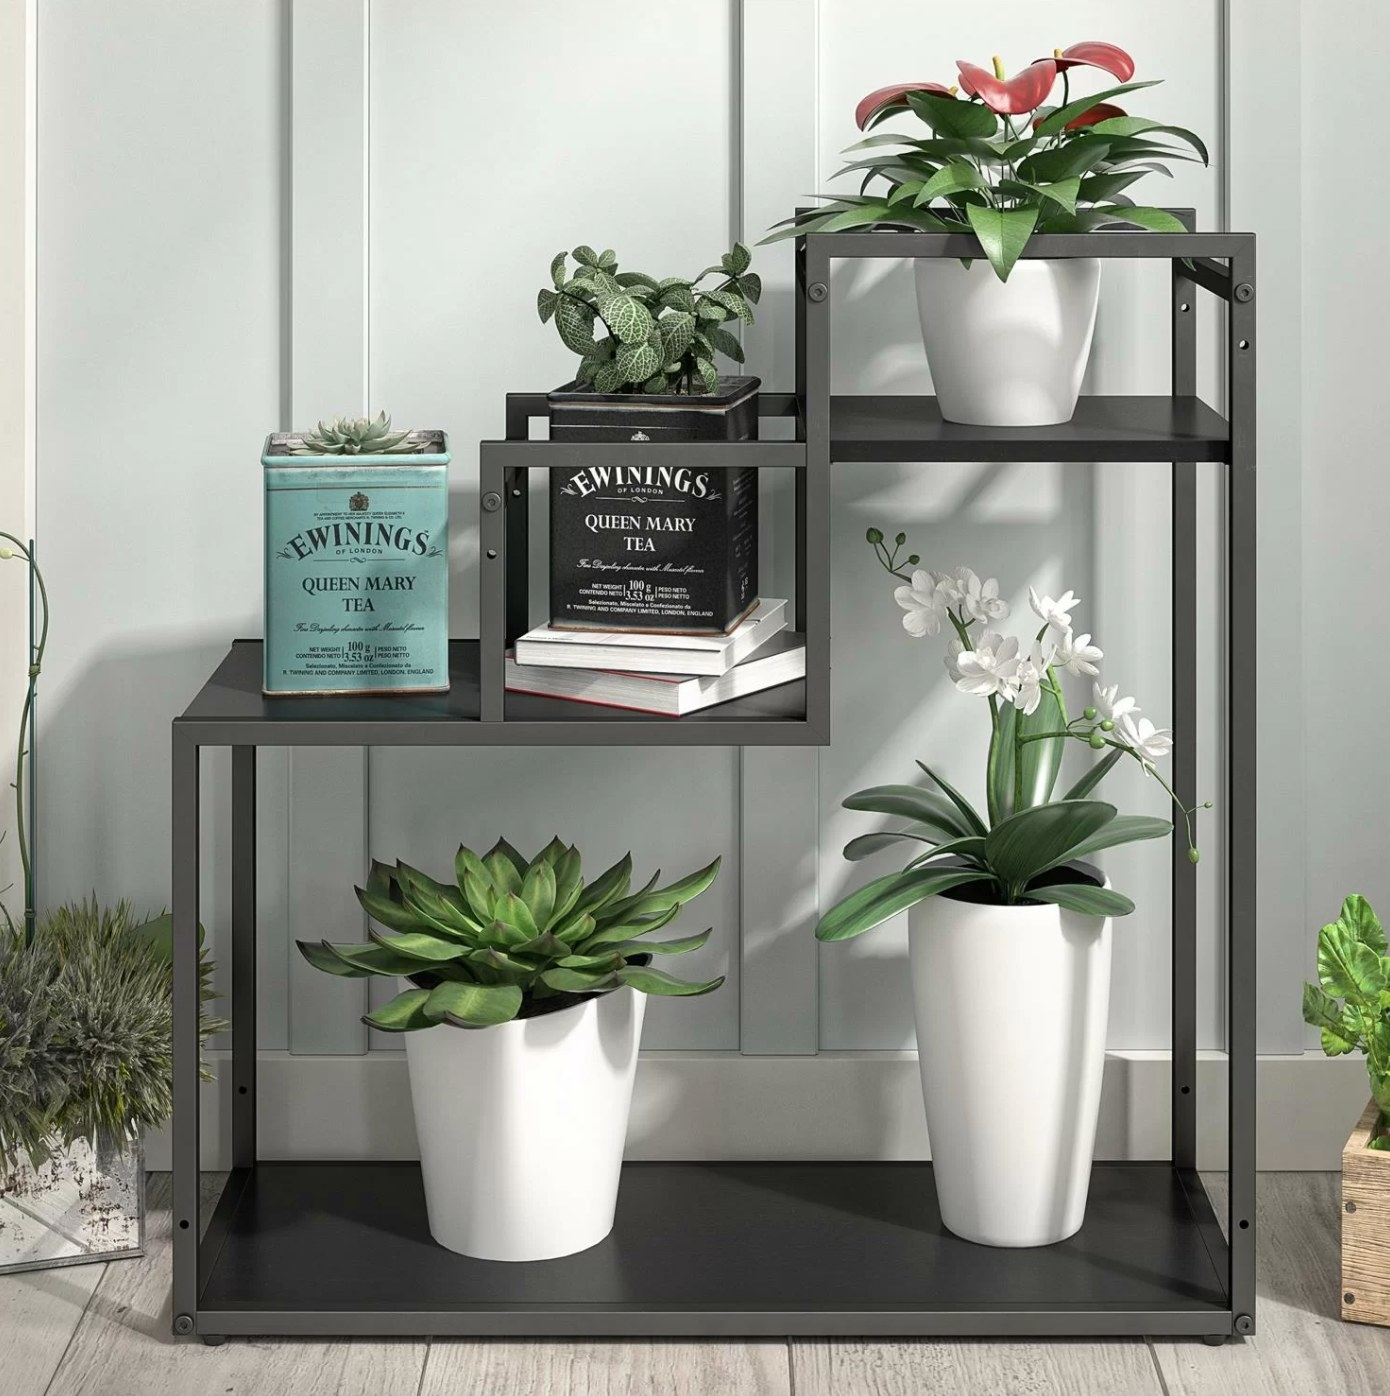 The three-tiered plant stand in black oak